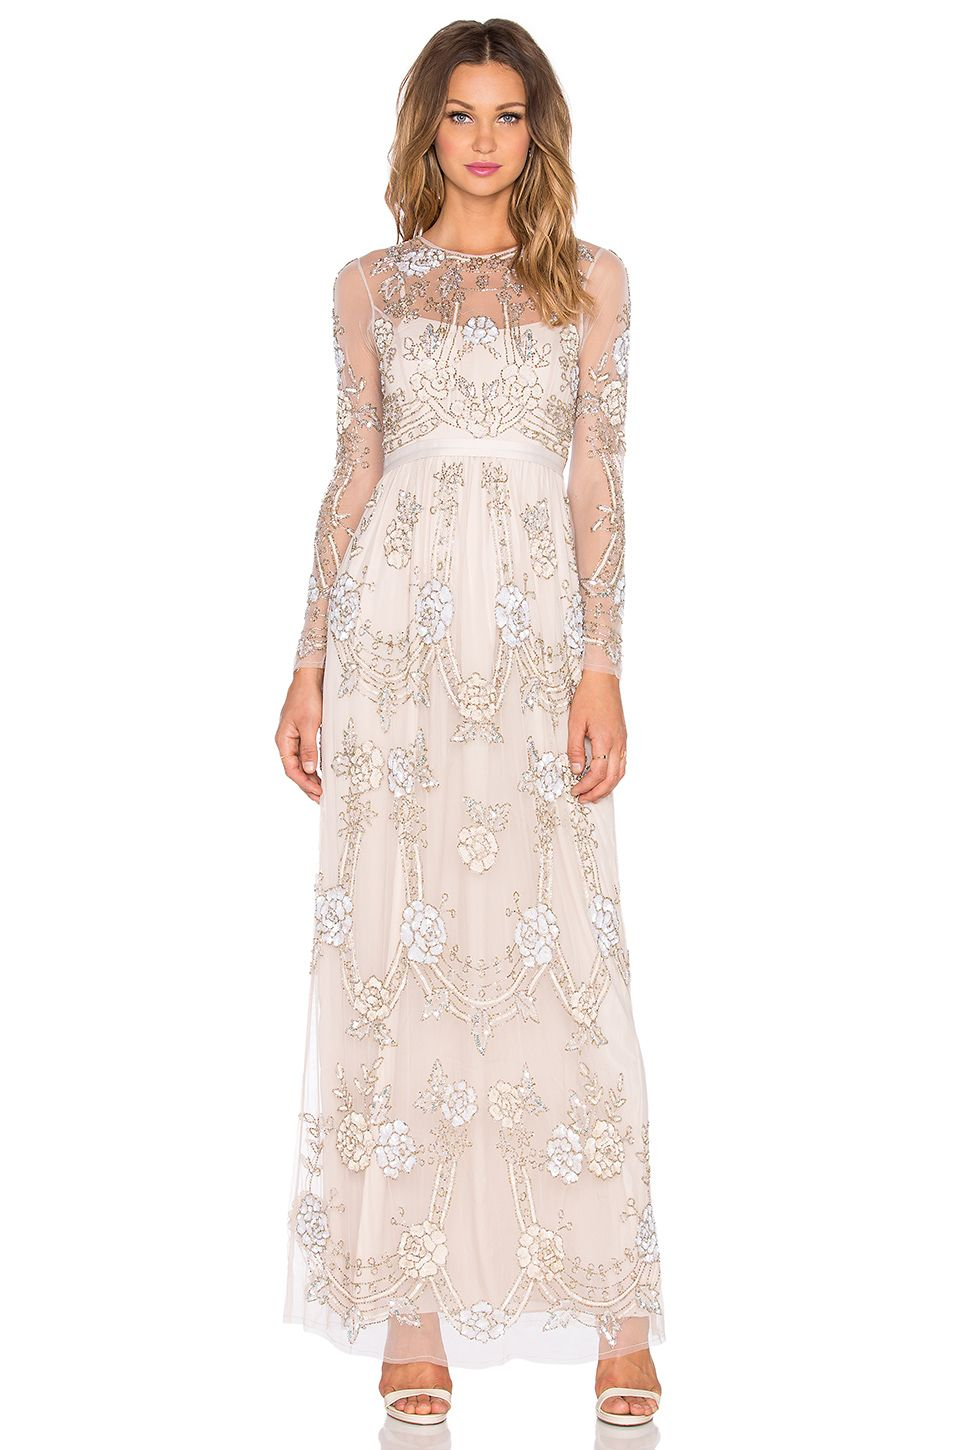 4948df433 Needle & thread Beaded Sequin-Embellished Maxi Dress in Transparent (Dust  Rose) | Lyst